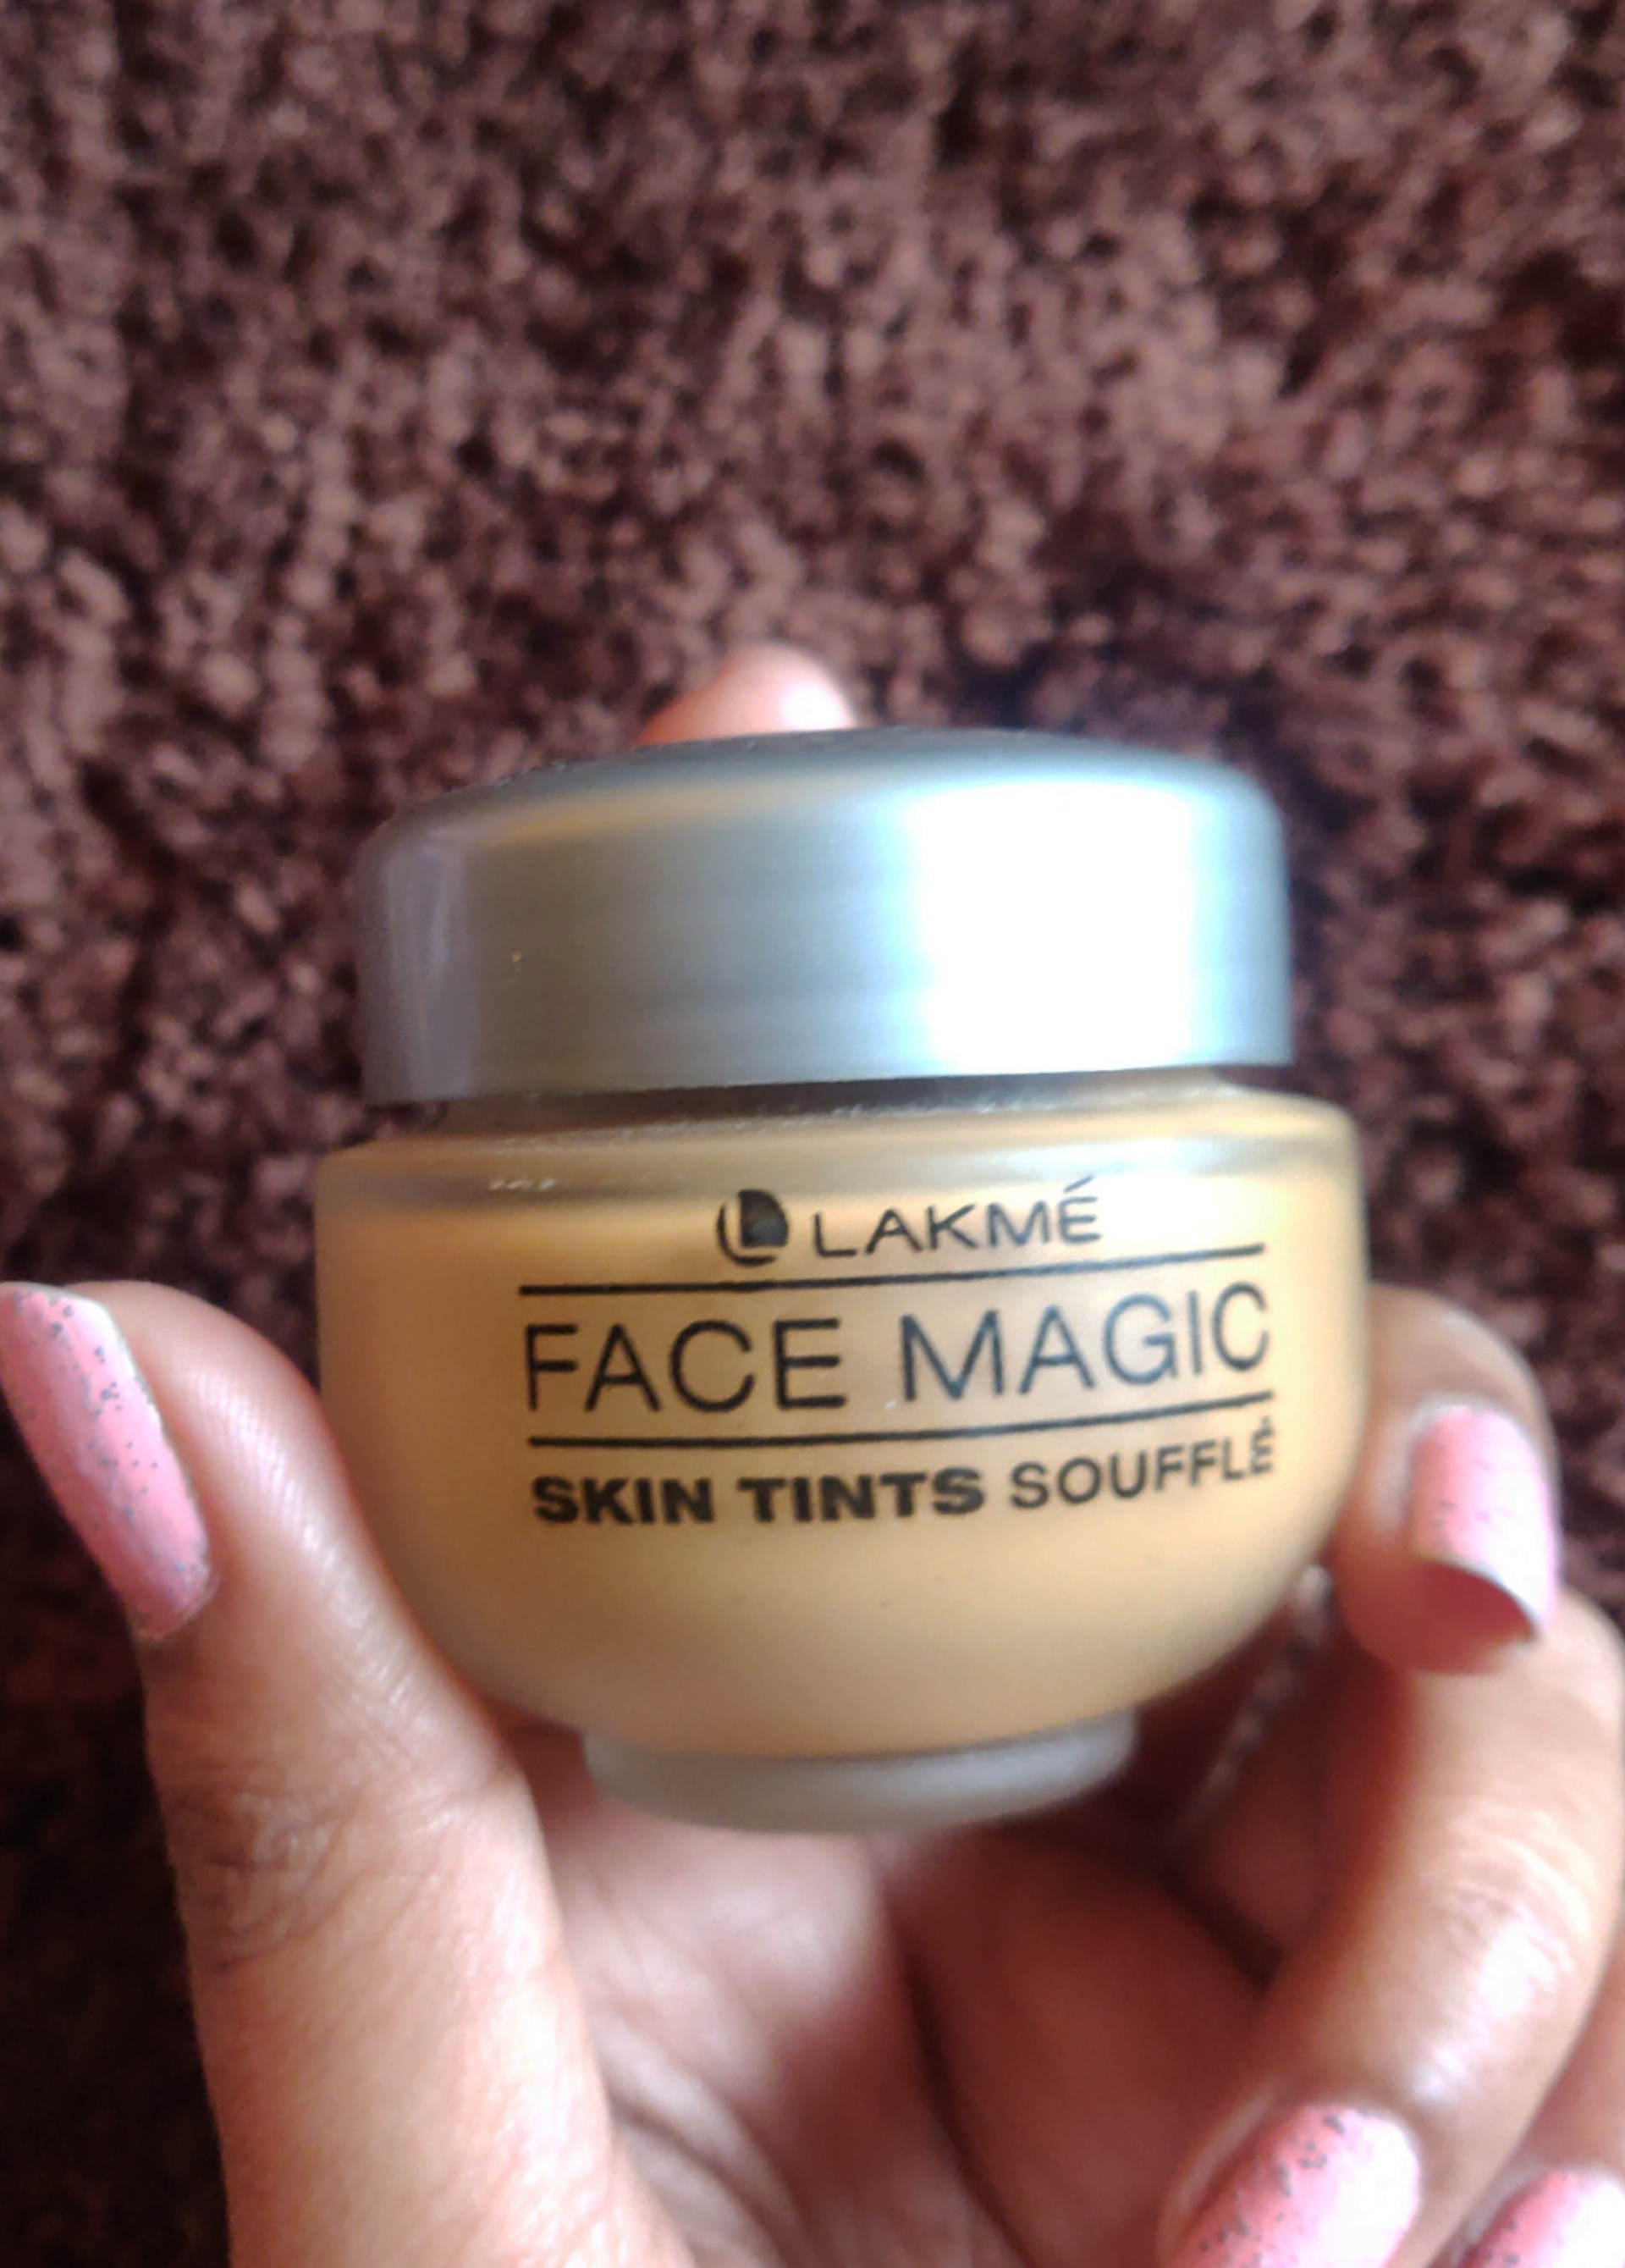 Lakme Face Magic Skin Tints Souffle-gives natural look-By swathiprabhu